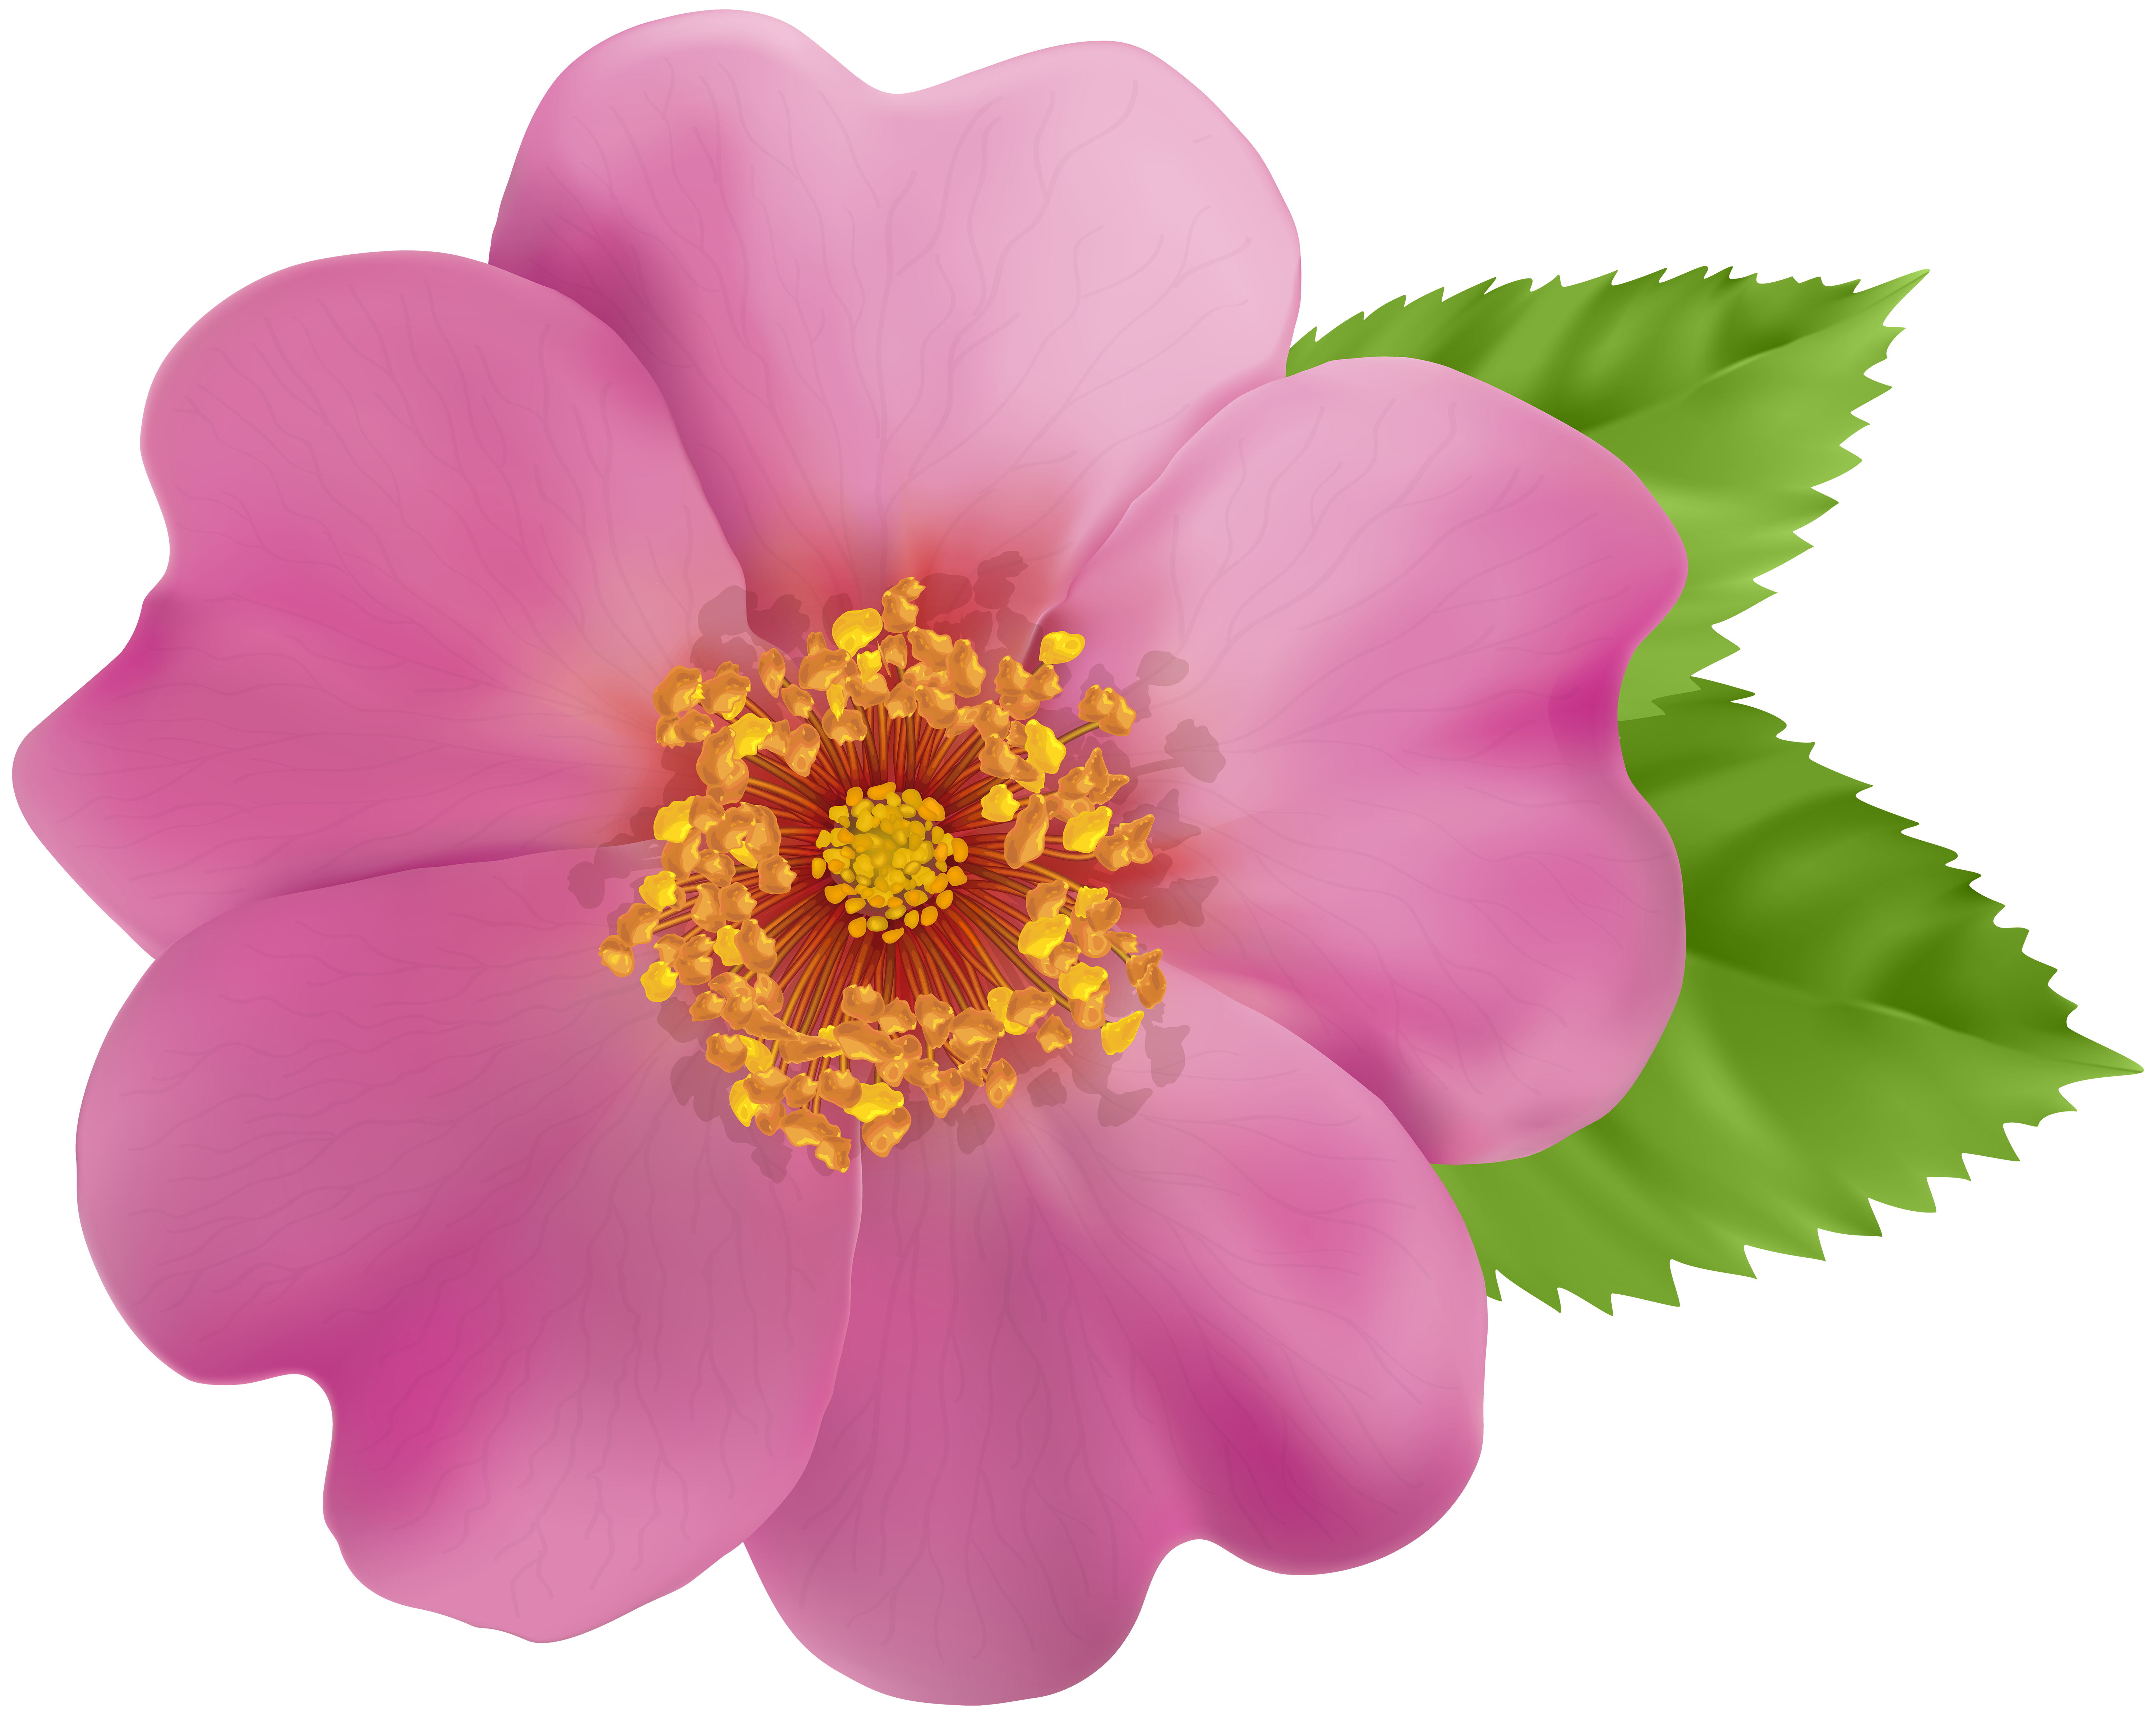 Wild rose clipart border picture transparent Wild Rose Flower PNG Clip Art Image | Gallery Yopriceville ... picture transparent